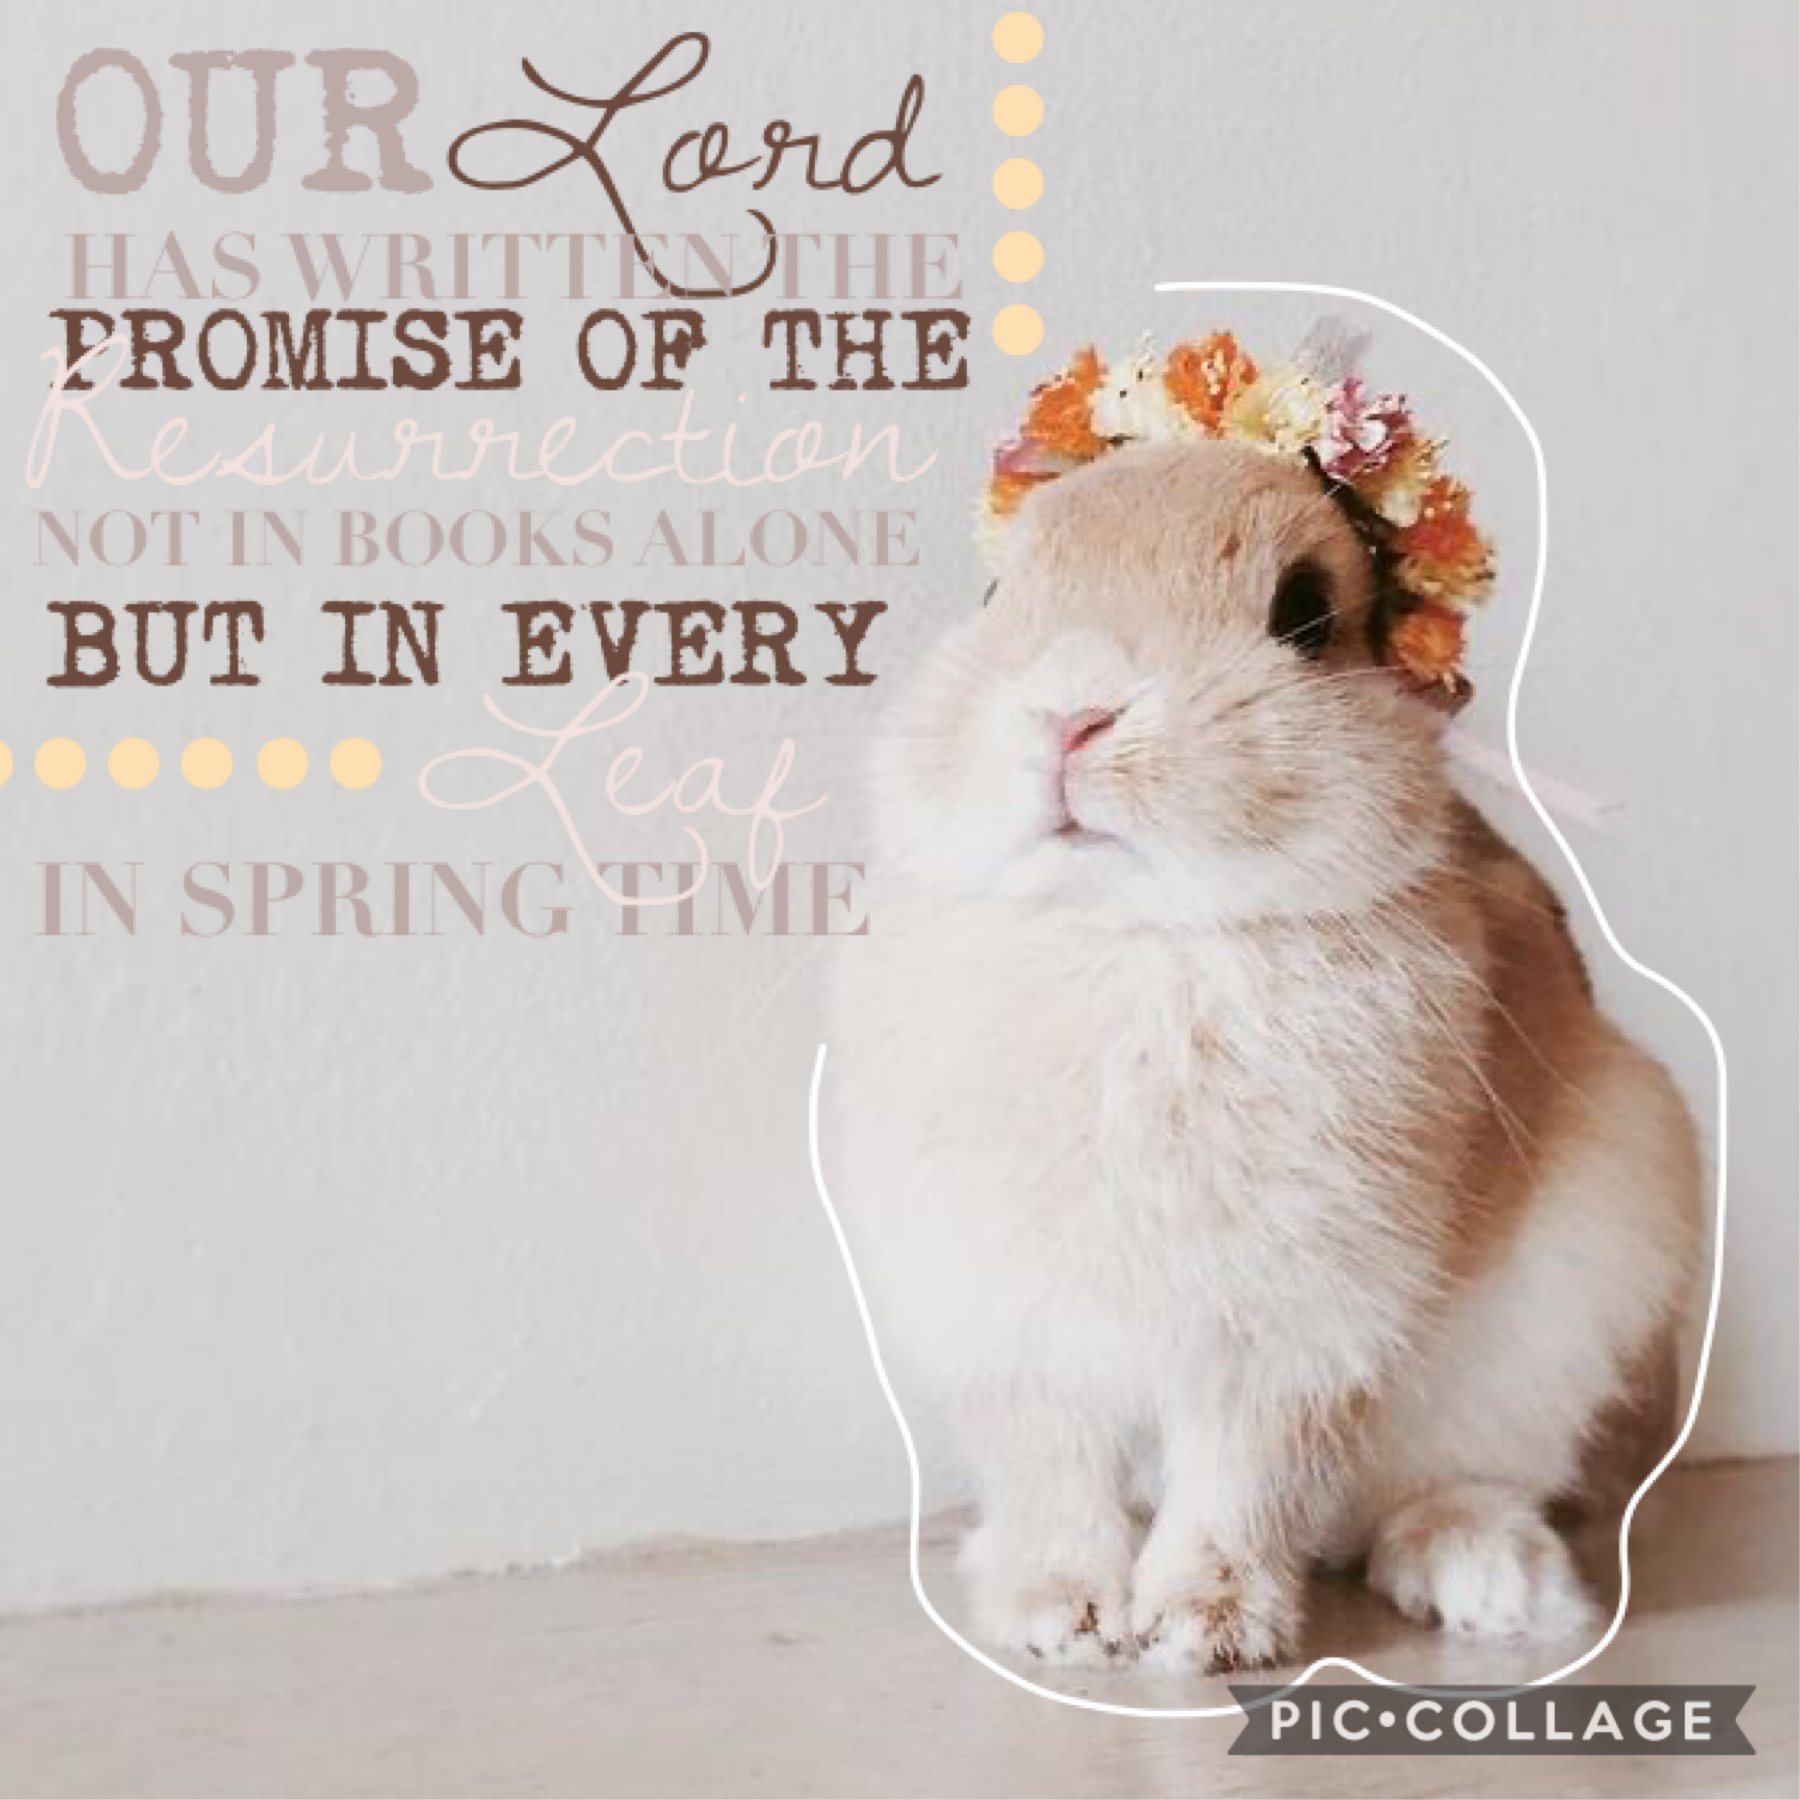 🌷click🌷 Happy Easter everybody! What did y'all get? I got Candy, (I love sponge candy.)  Also this bunny is too cute. :) Qotd: favorite takeout place? Aotd: Subway, Dairy Queen